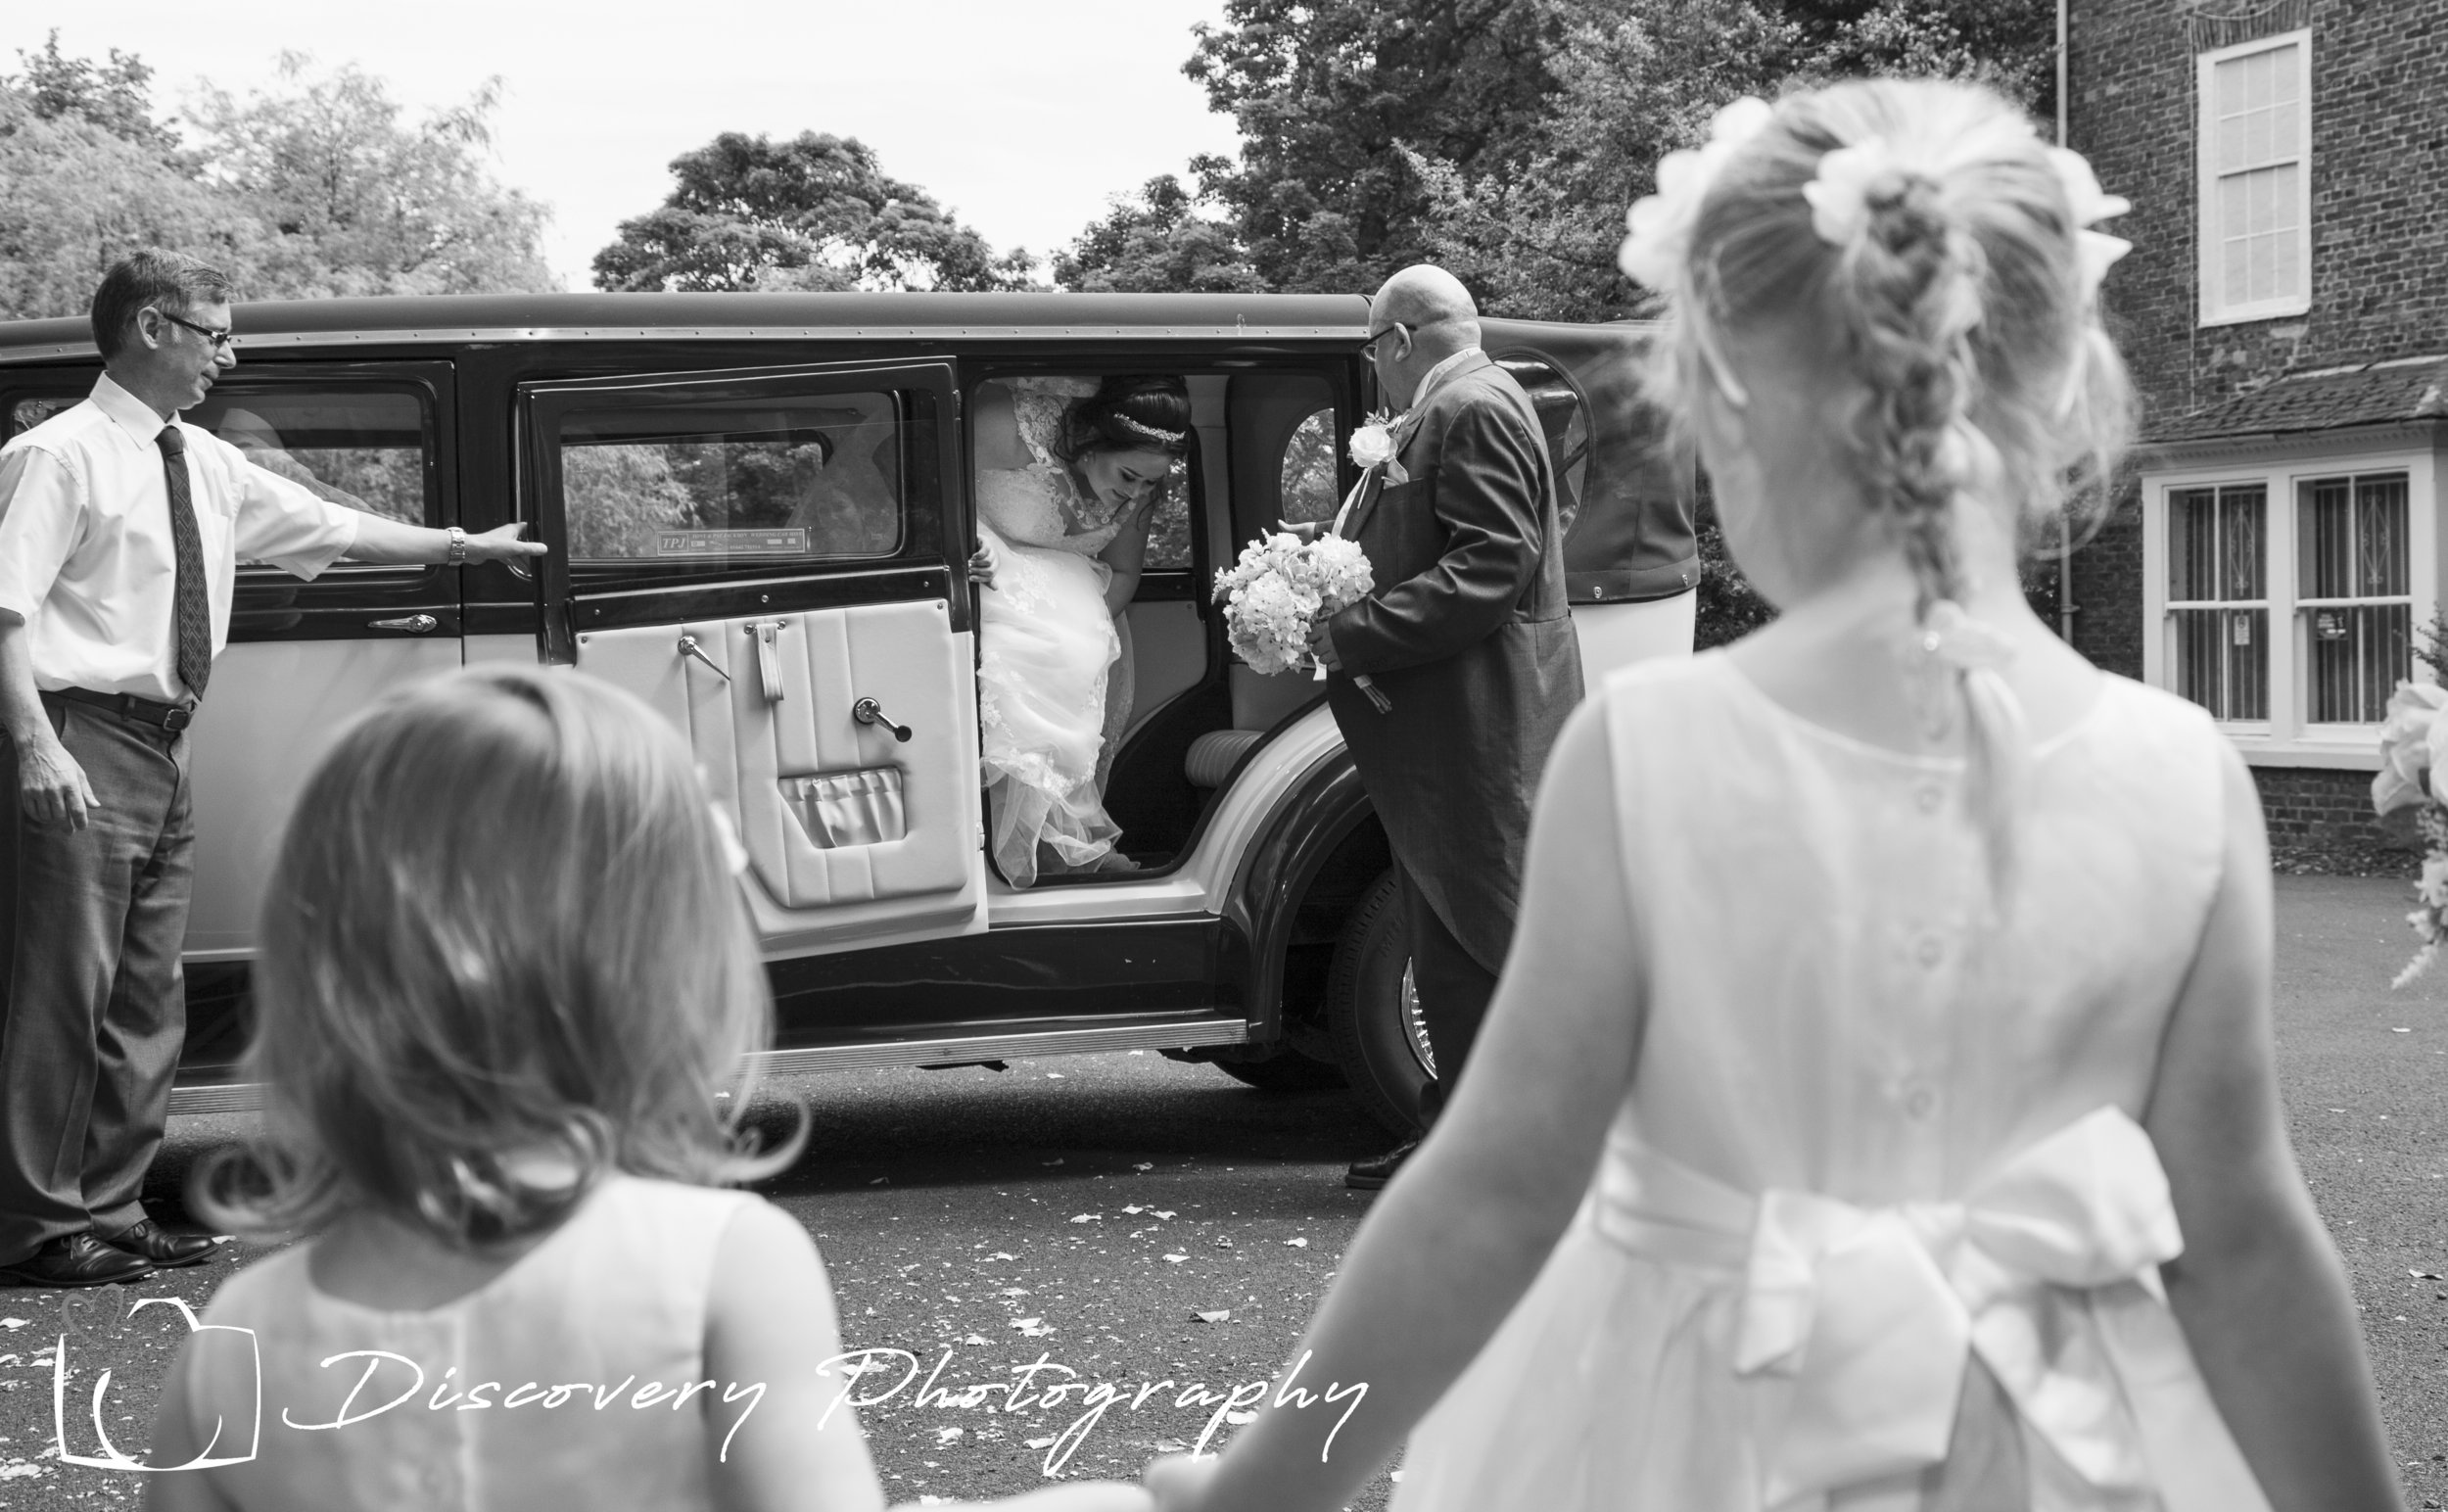 James-and-Joanne-Wedding-photography-Billingham-St-Marys-parish-church.jpg